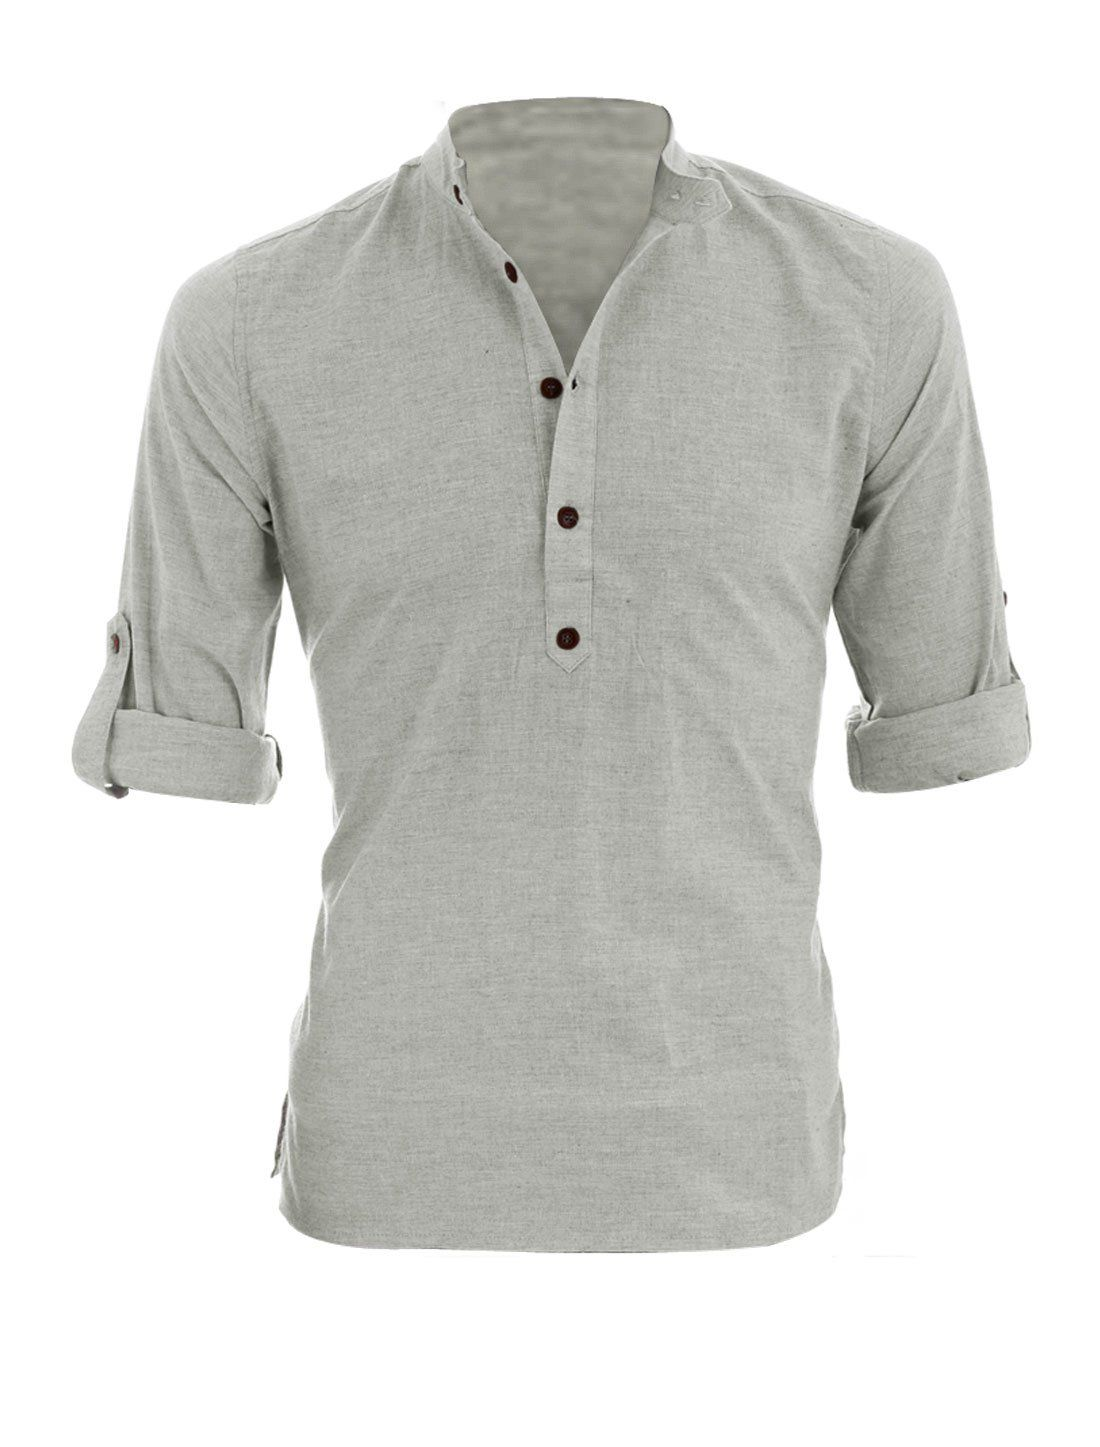 Black t shirt rolled up sleeves - Allegra K Men Half Placket Long Roll Up Sleeves Casual Shirt Light Gray L Amazon